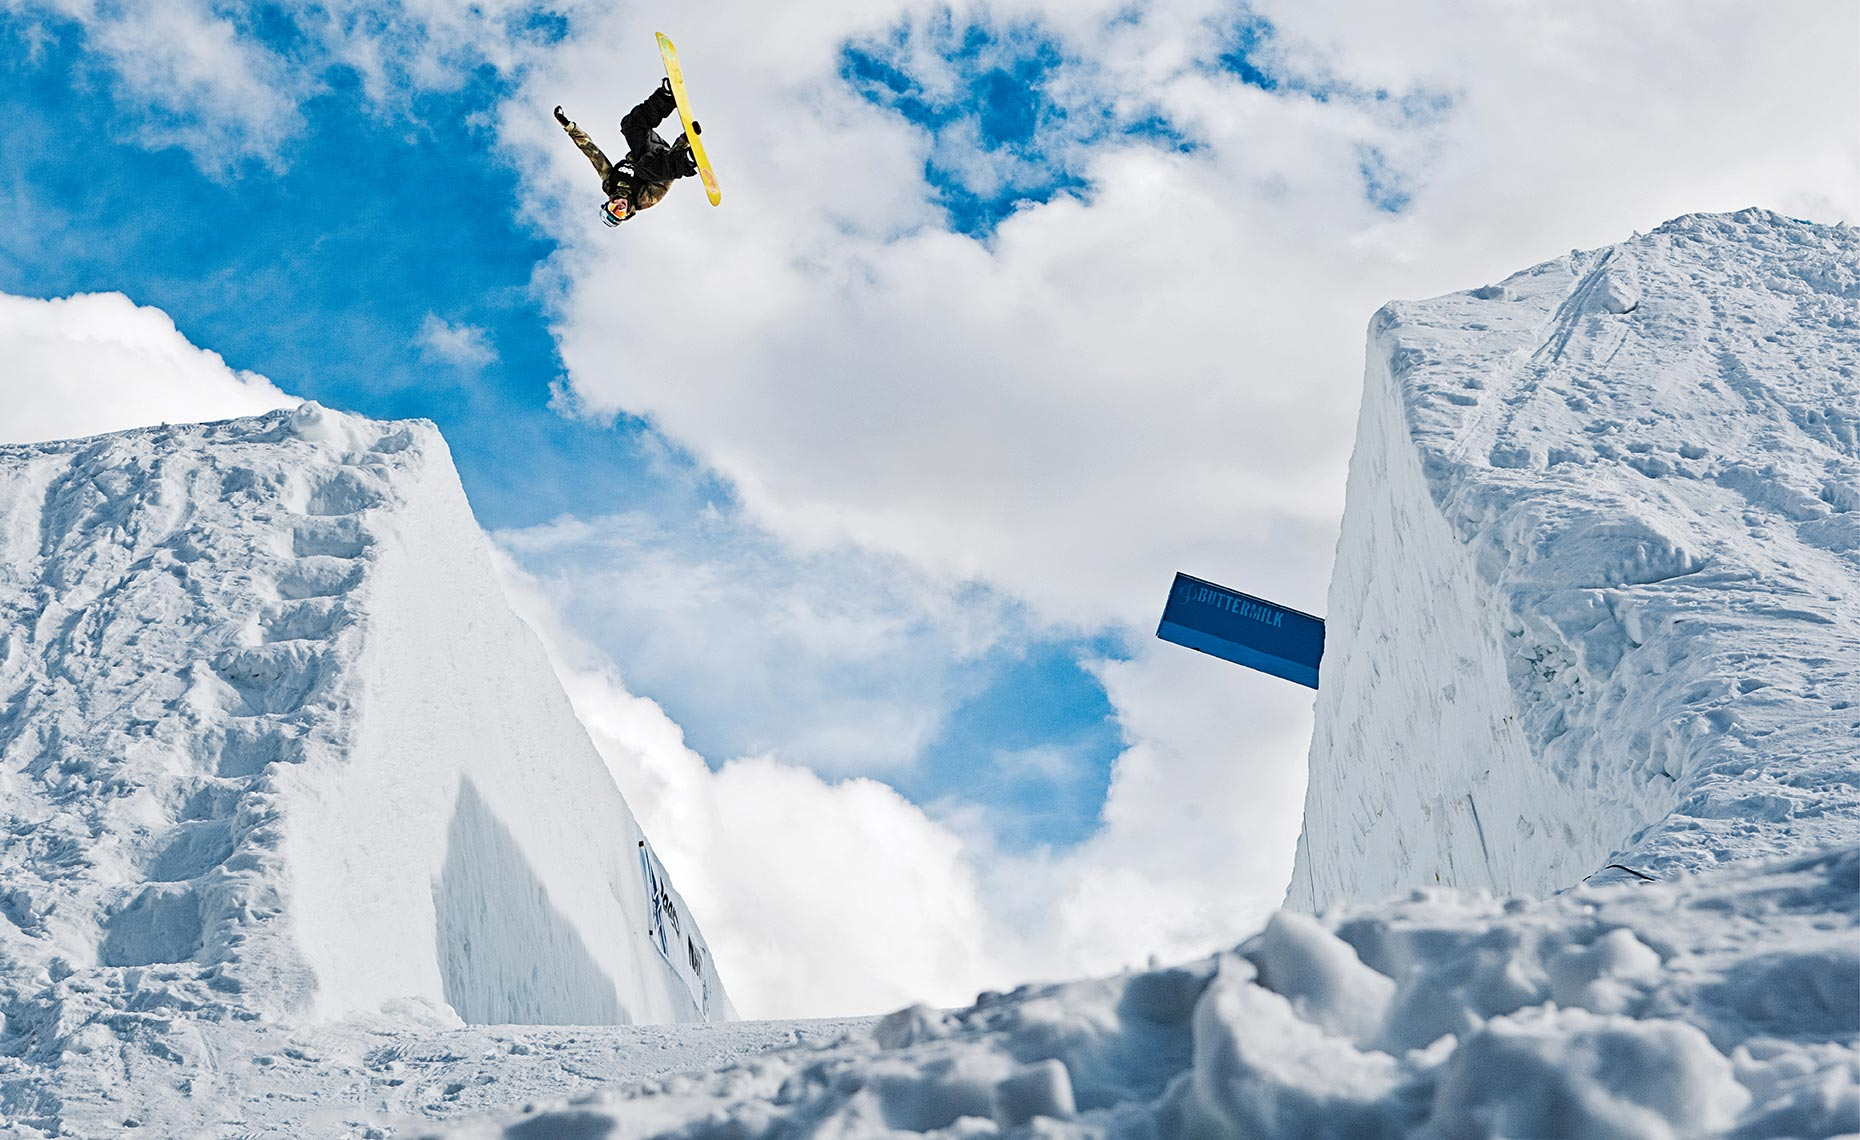 23_Mikkel_Bang_Winter_X_Games_Aspen_Colorado_Snowboarding_Chris_Wellhausen_Photography.JPG